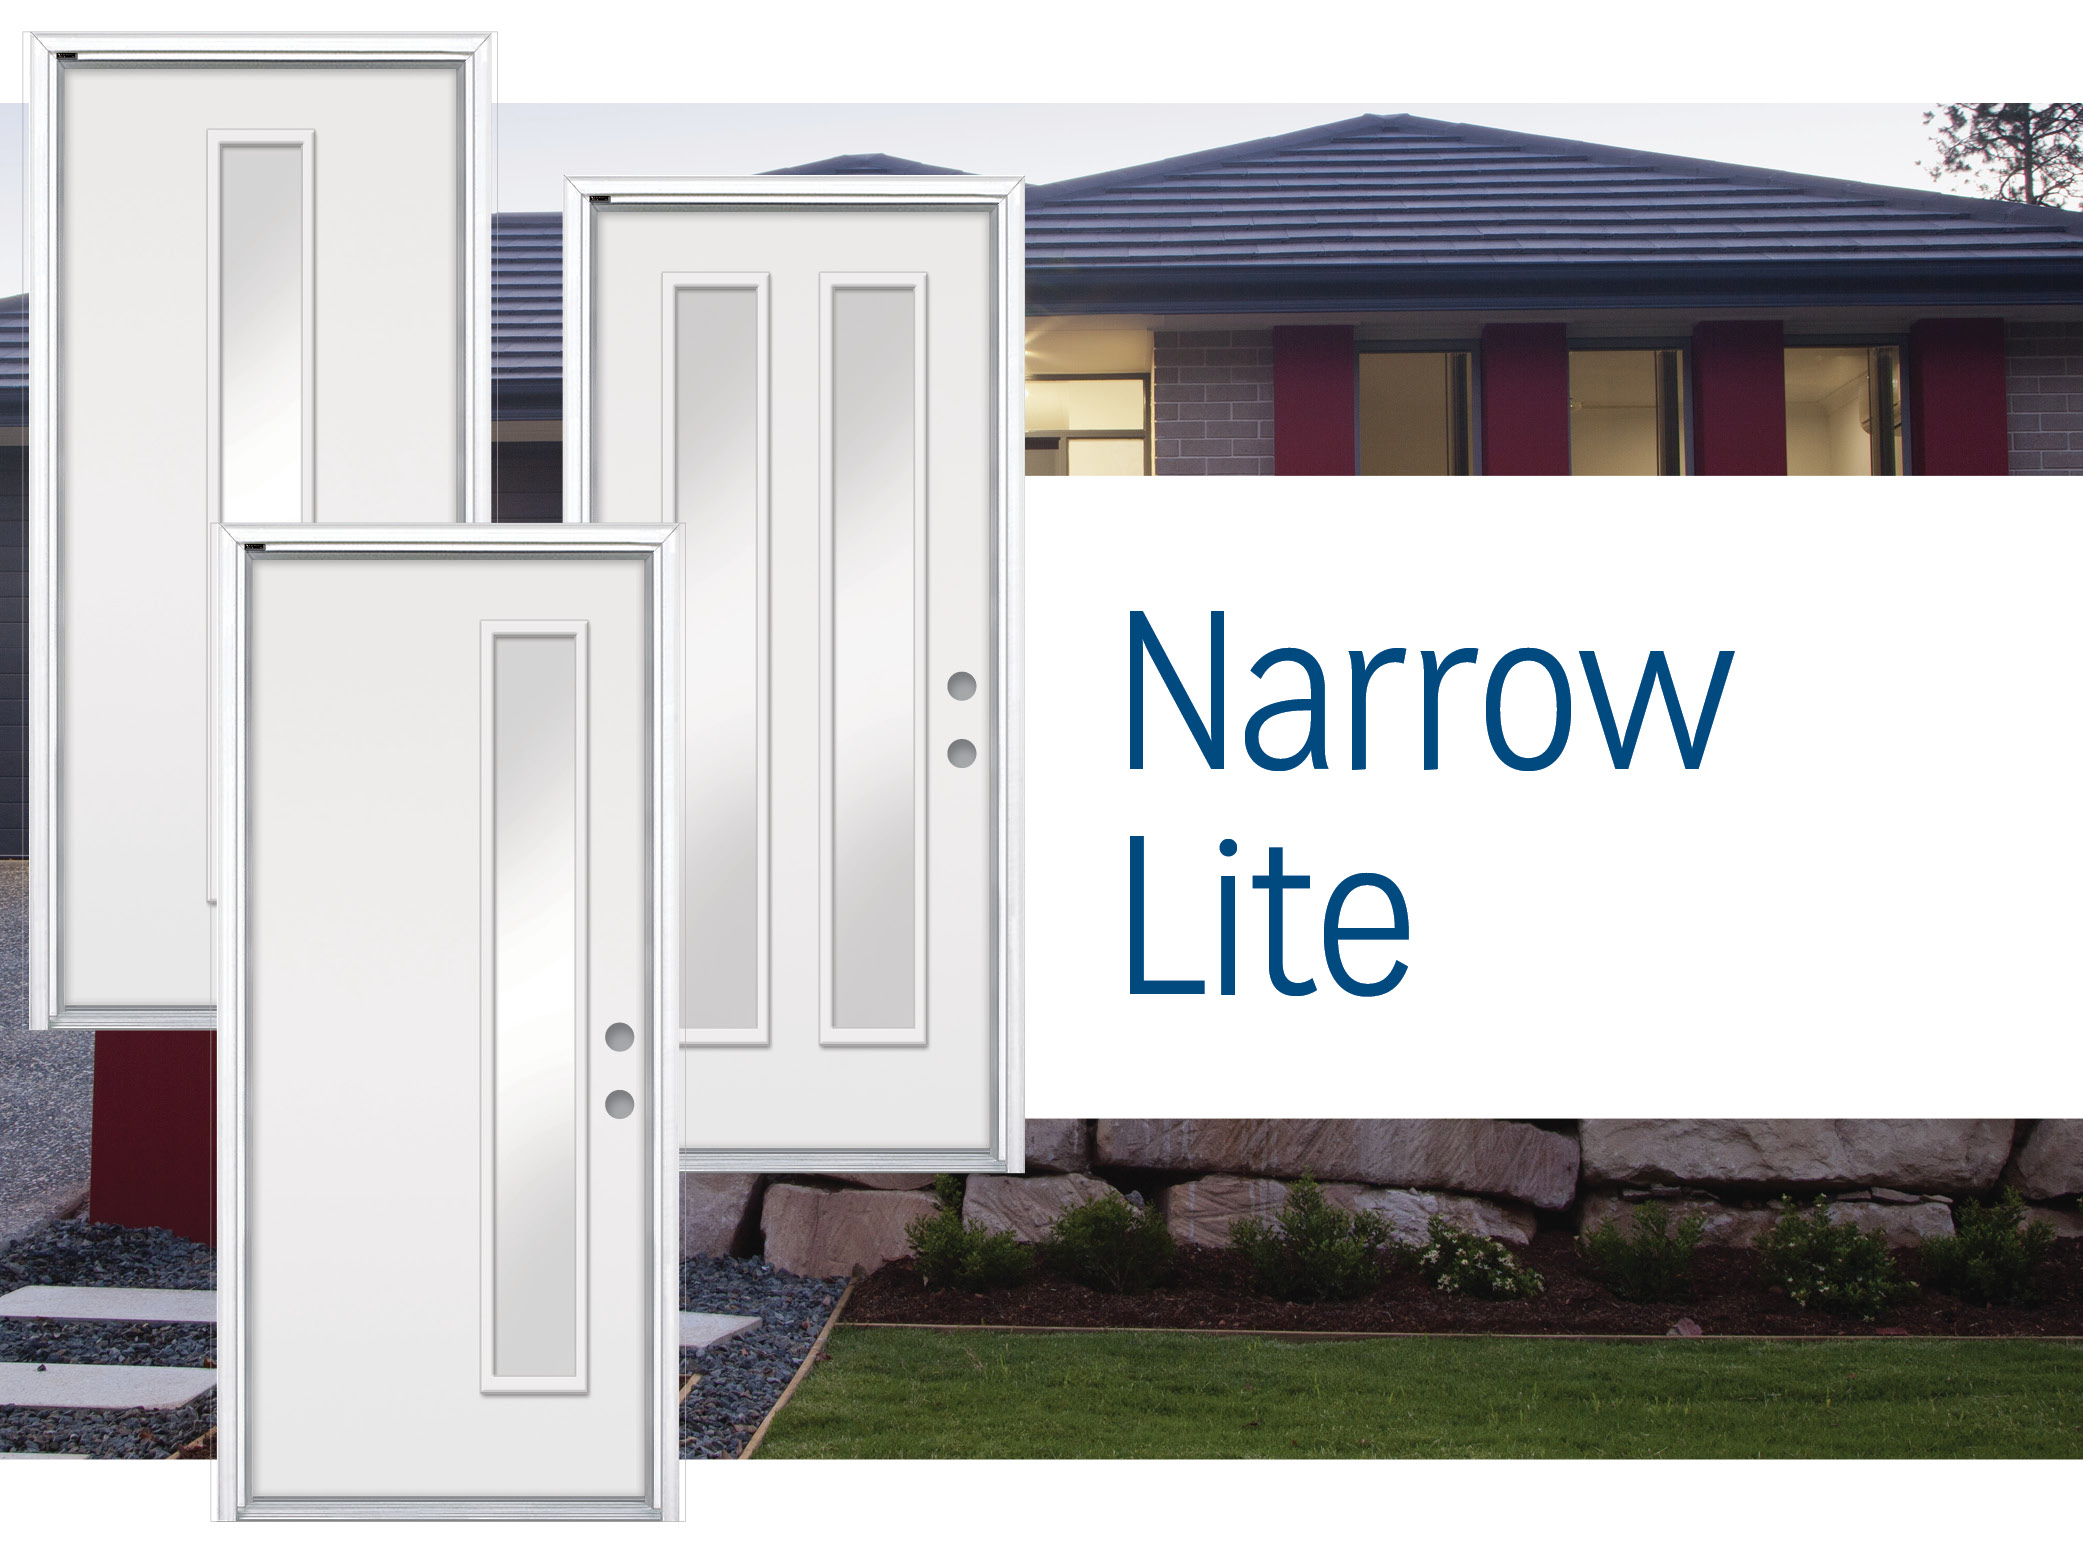 Narrow Lite